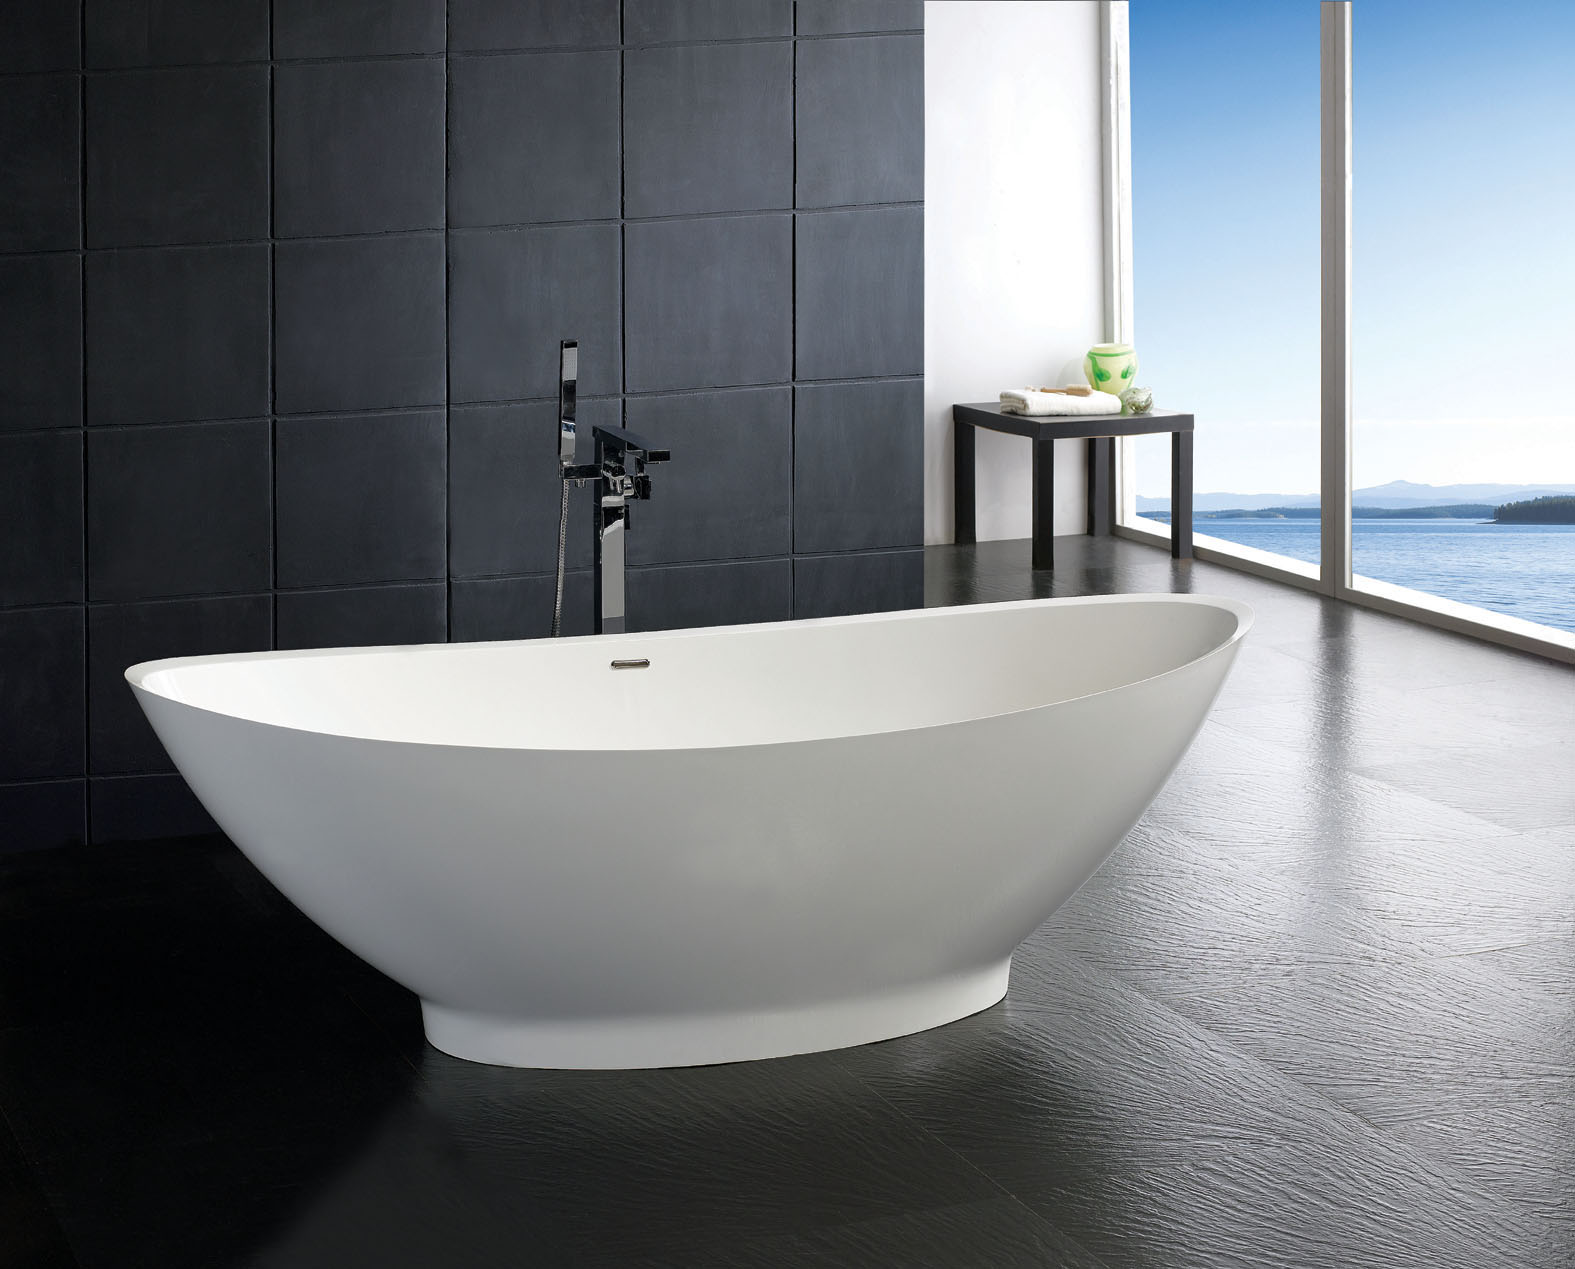 Esperia Luxury Modern Bathtub 74